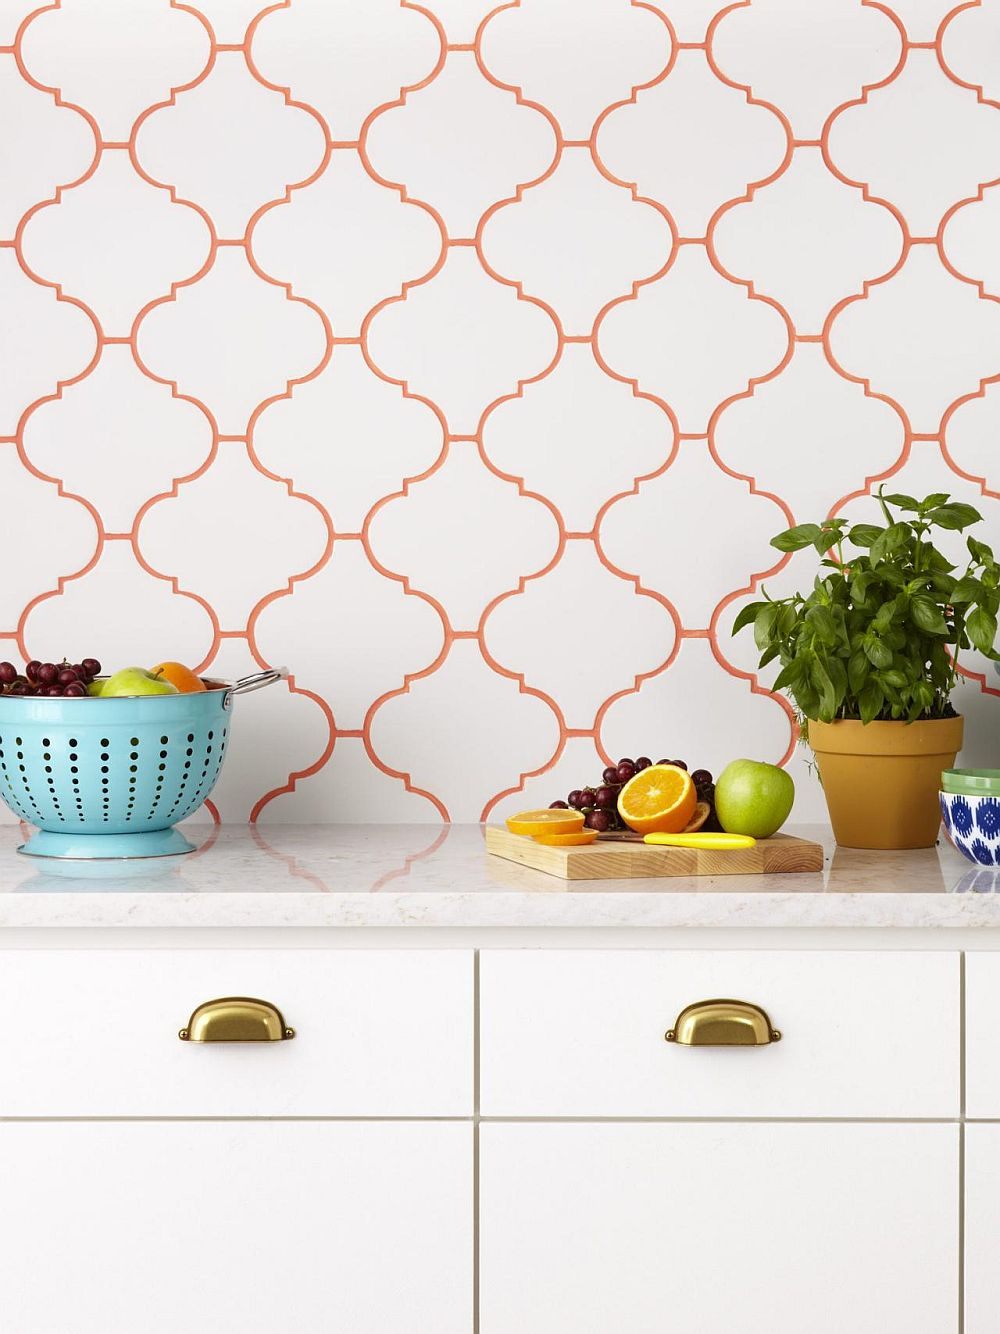 Orange grout lines for tile in white with a touch of flowery pattern